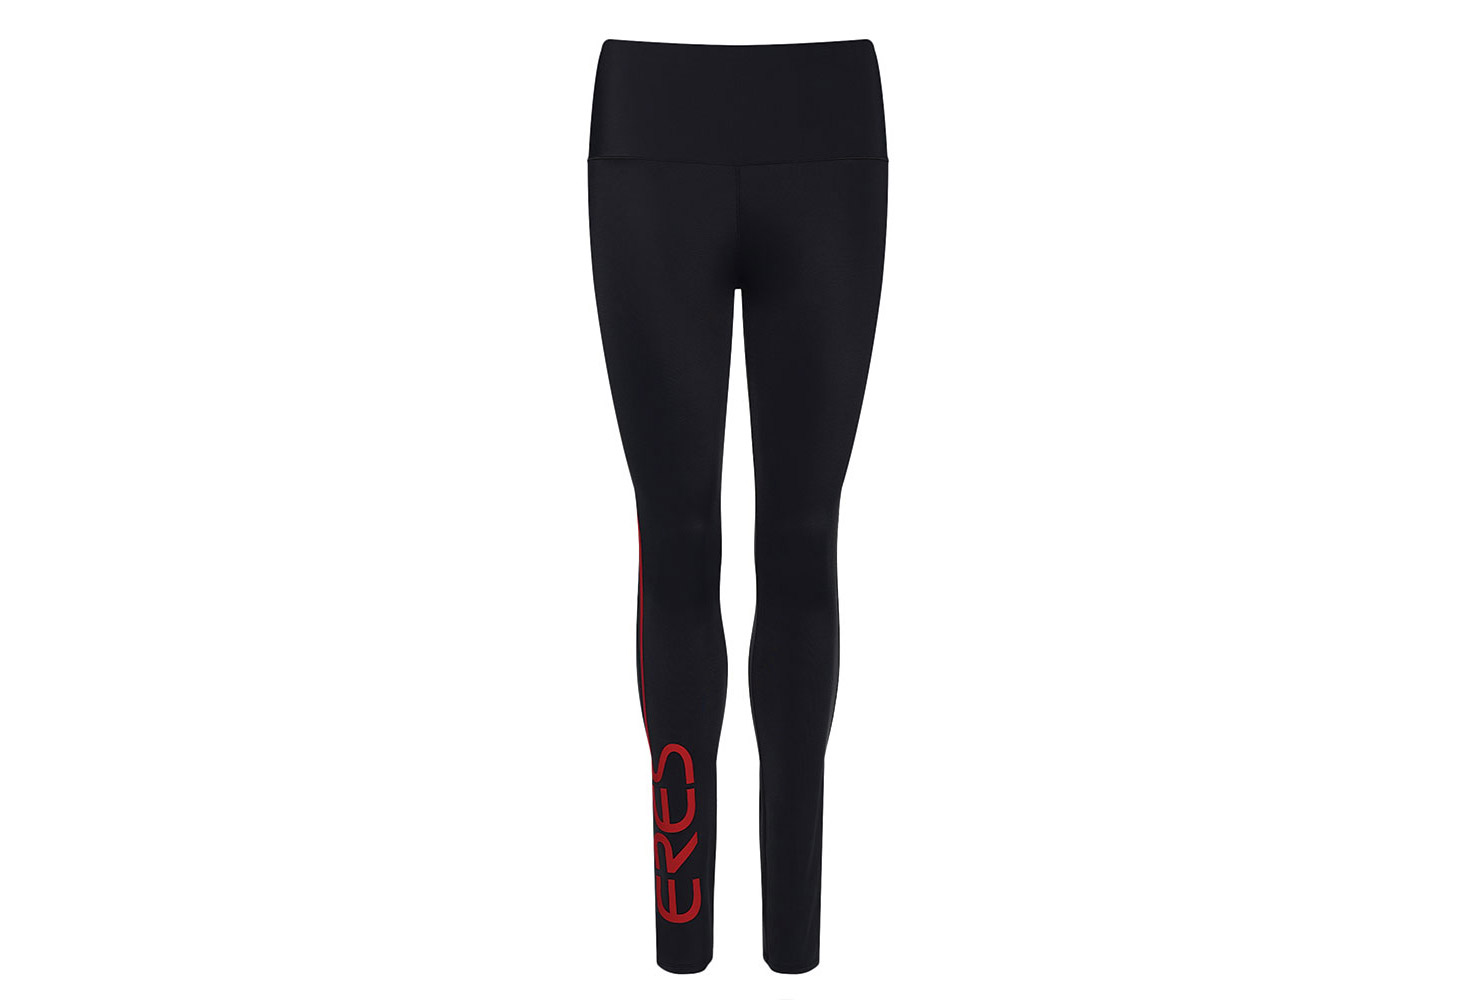 Mindful Legging Vista estándar 3